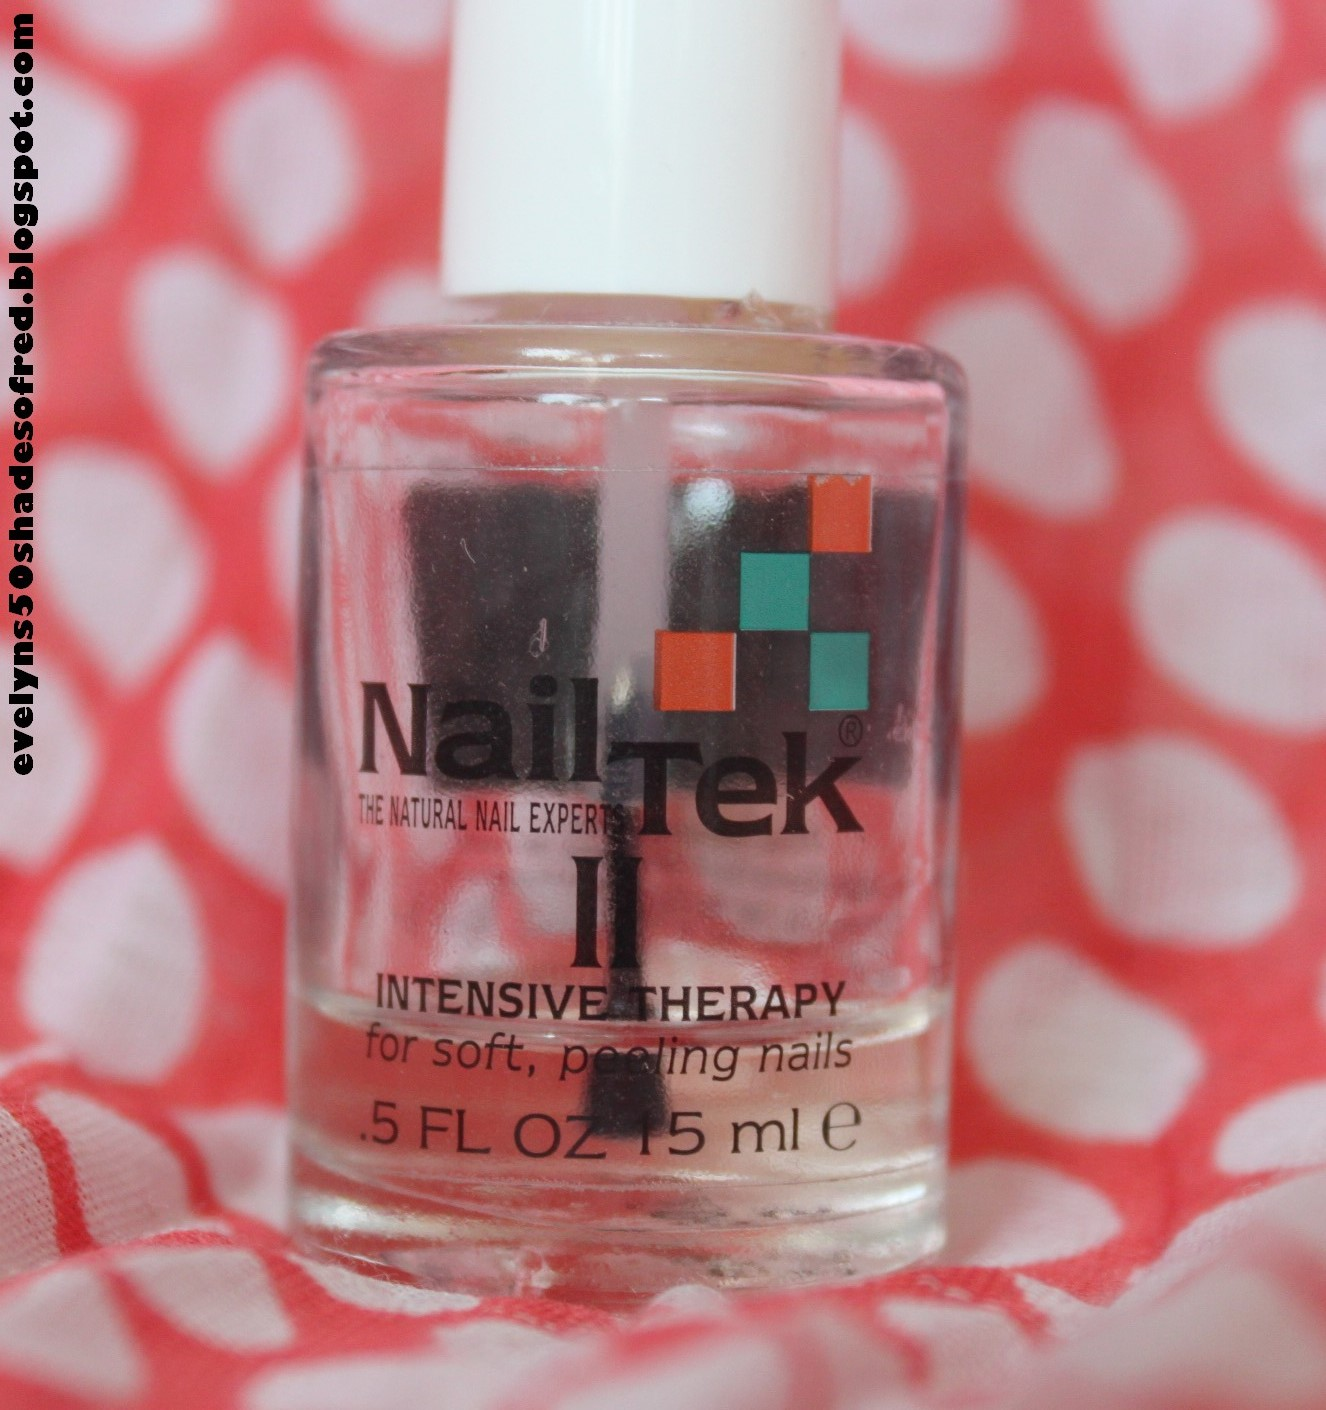 Nail Envy Vs Nail Tek: Bitwa Base Coatów / Base Coat Battle